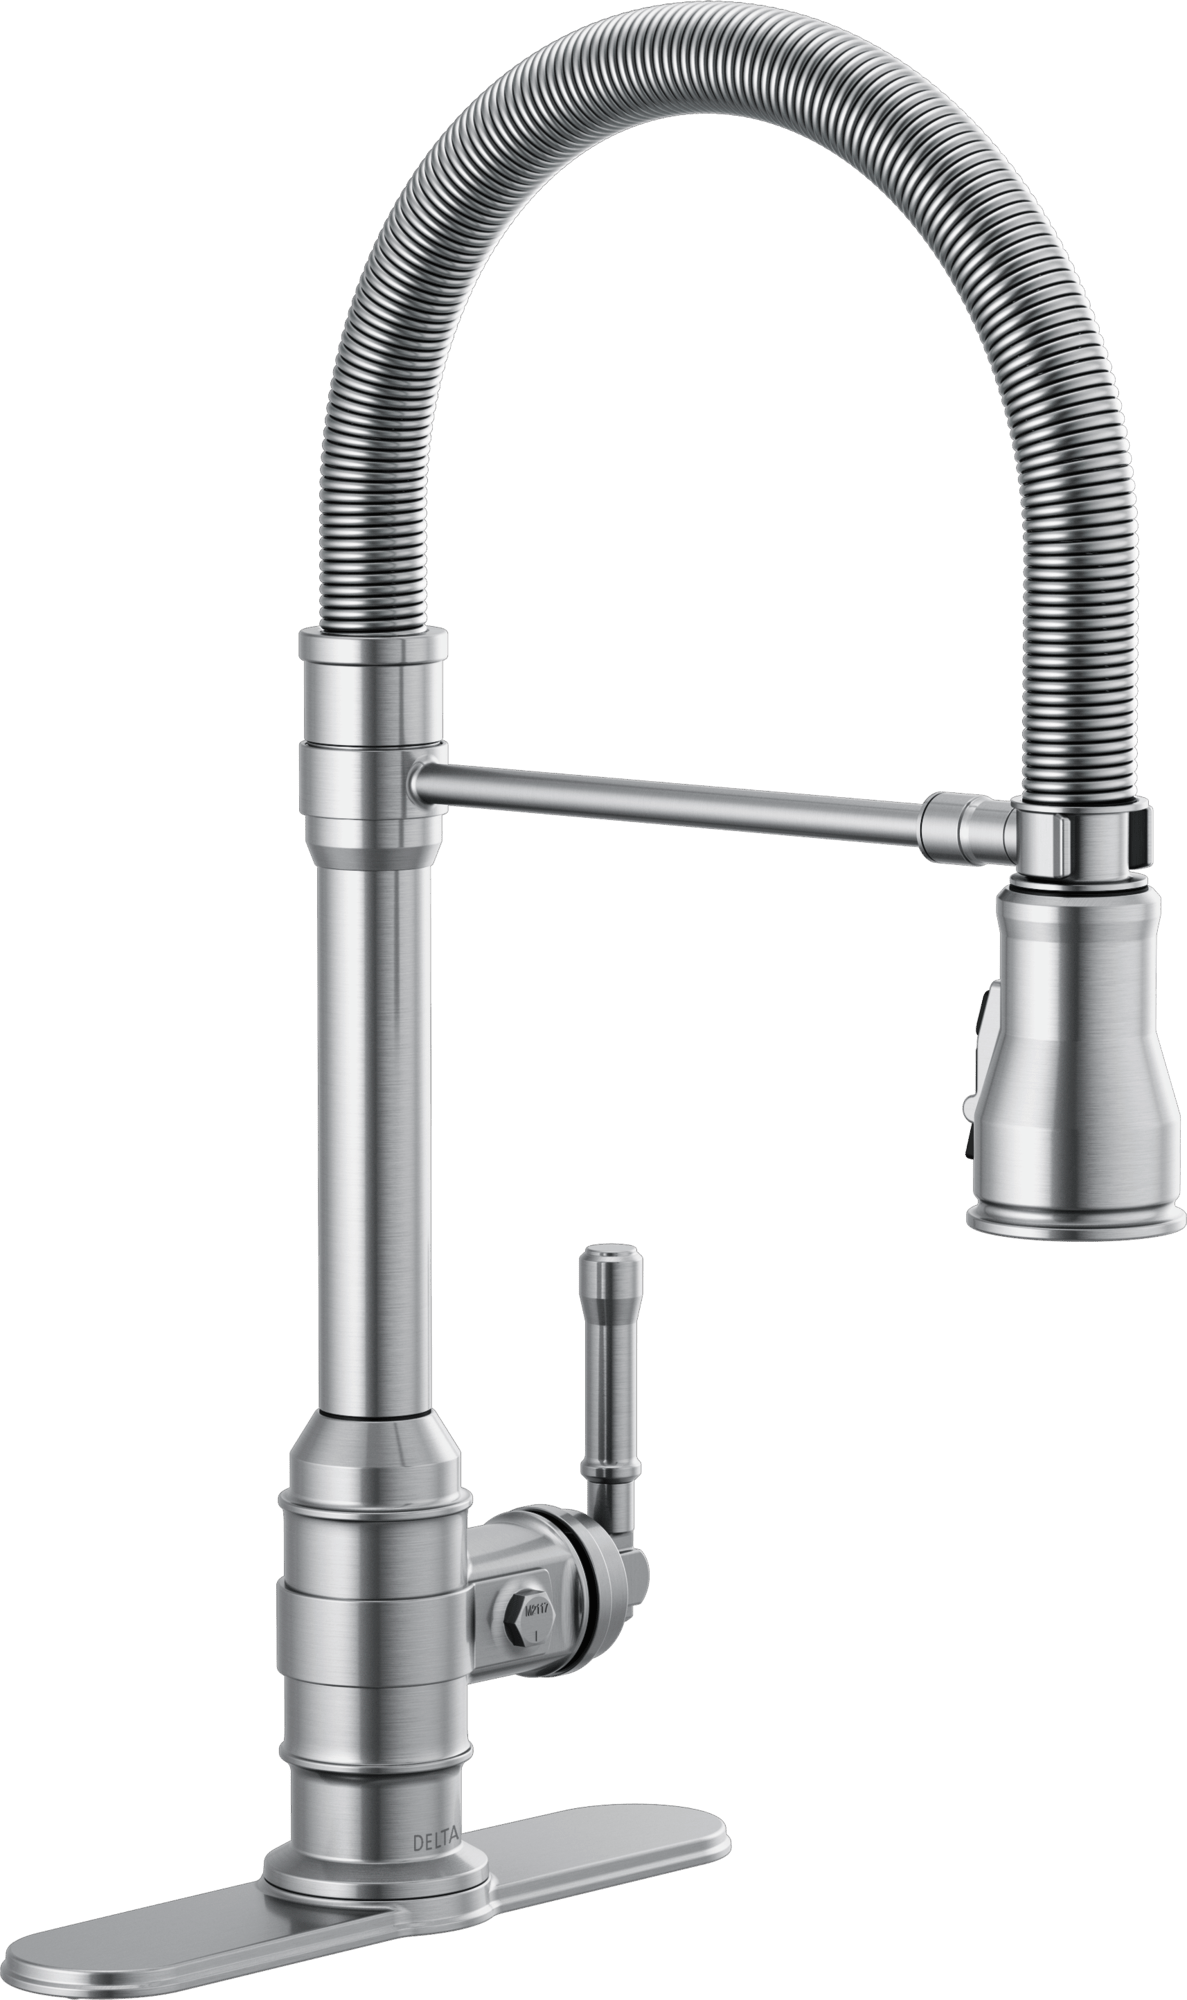 single handle pull down kitchen faucet with spring spout